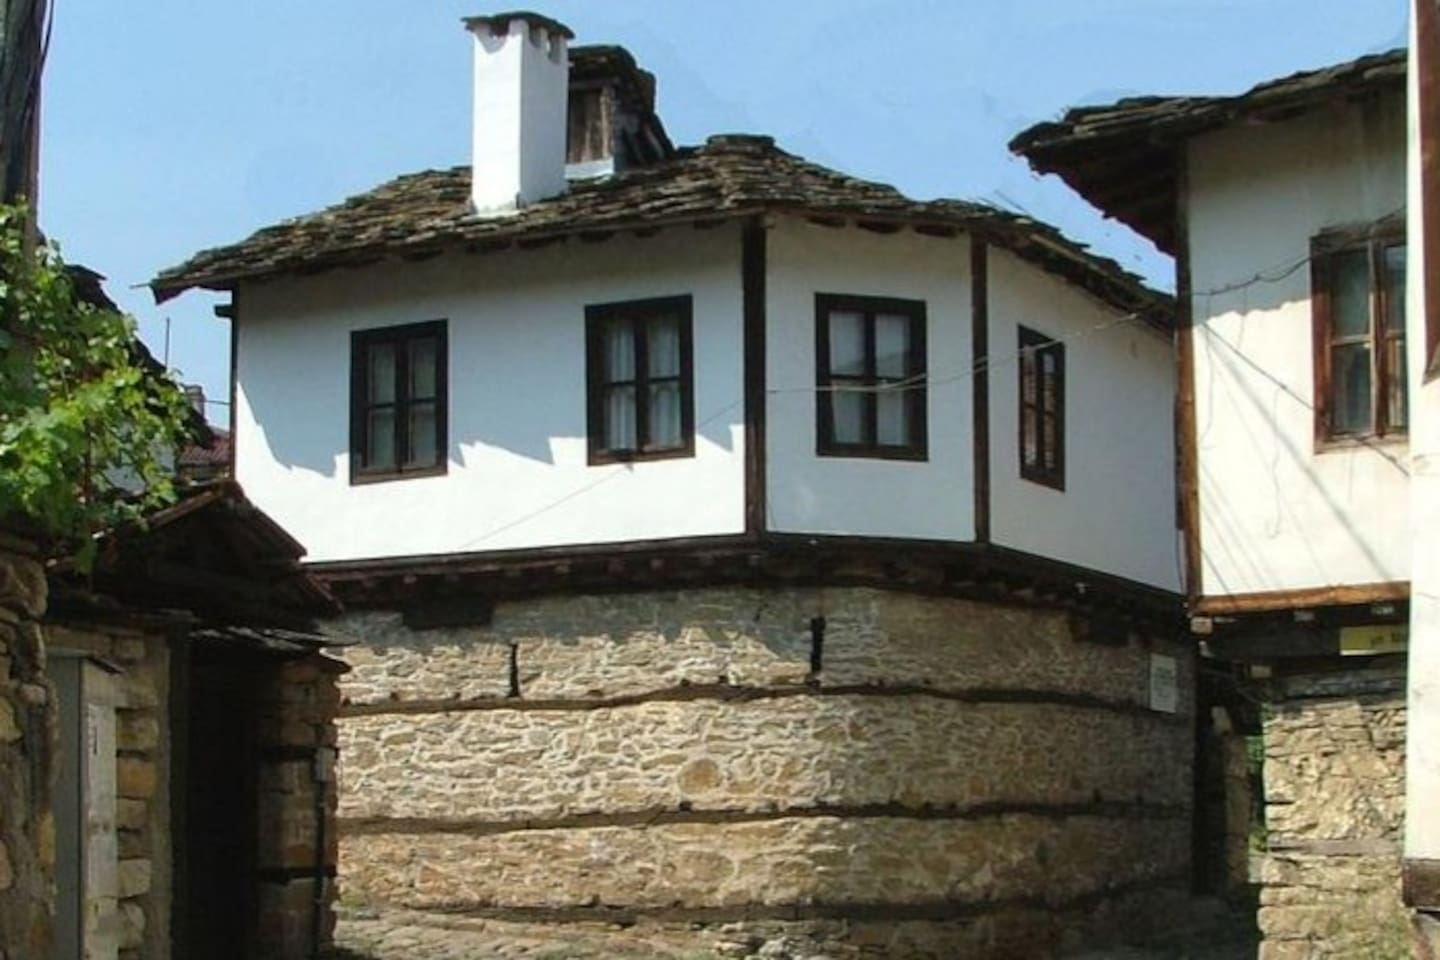 The Tinkov house - authentic Bulgarian flair in the heart of Lovech